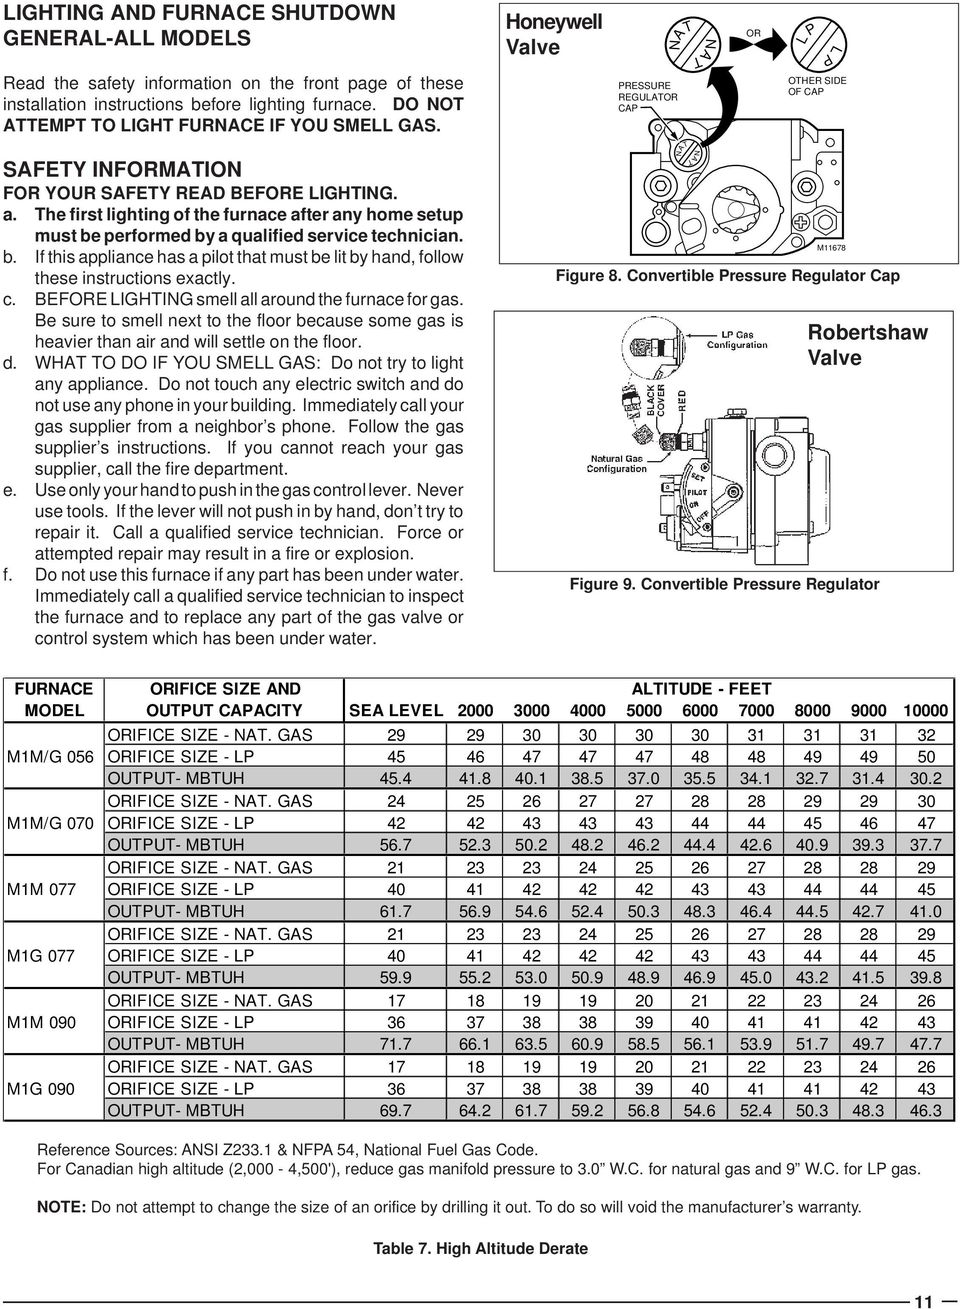 Ruud Silhouette Ii Gas Furnace Manual Pdf Wiring Diagram And Schematic York M1g M1m Furnaces Service